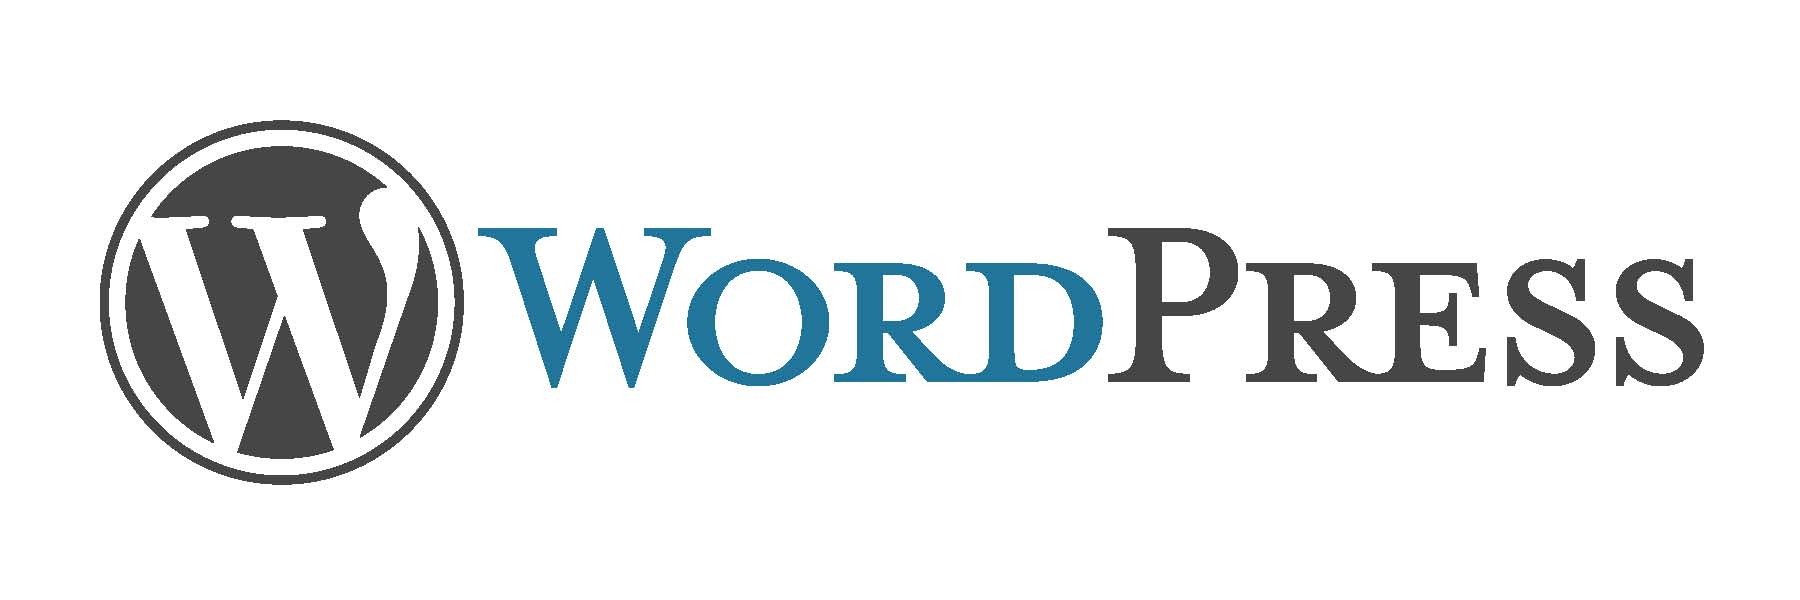 10 Essential WordPress Interview Questions - Image 1